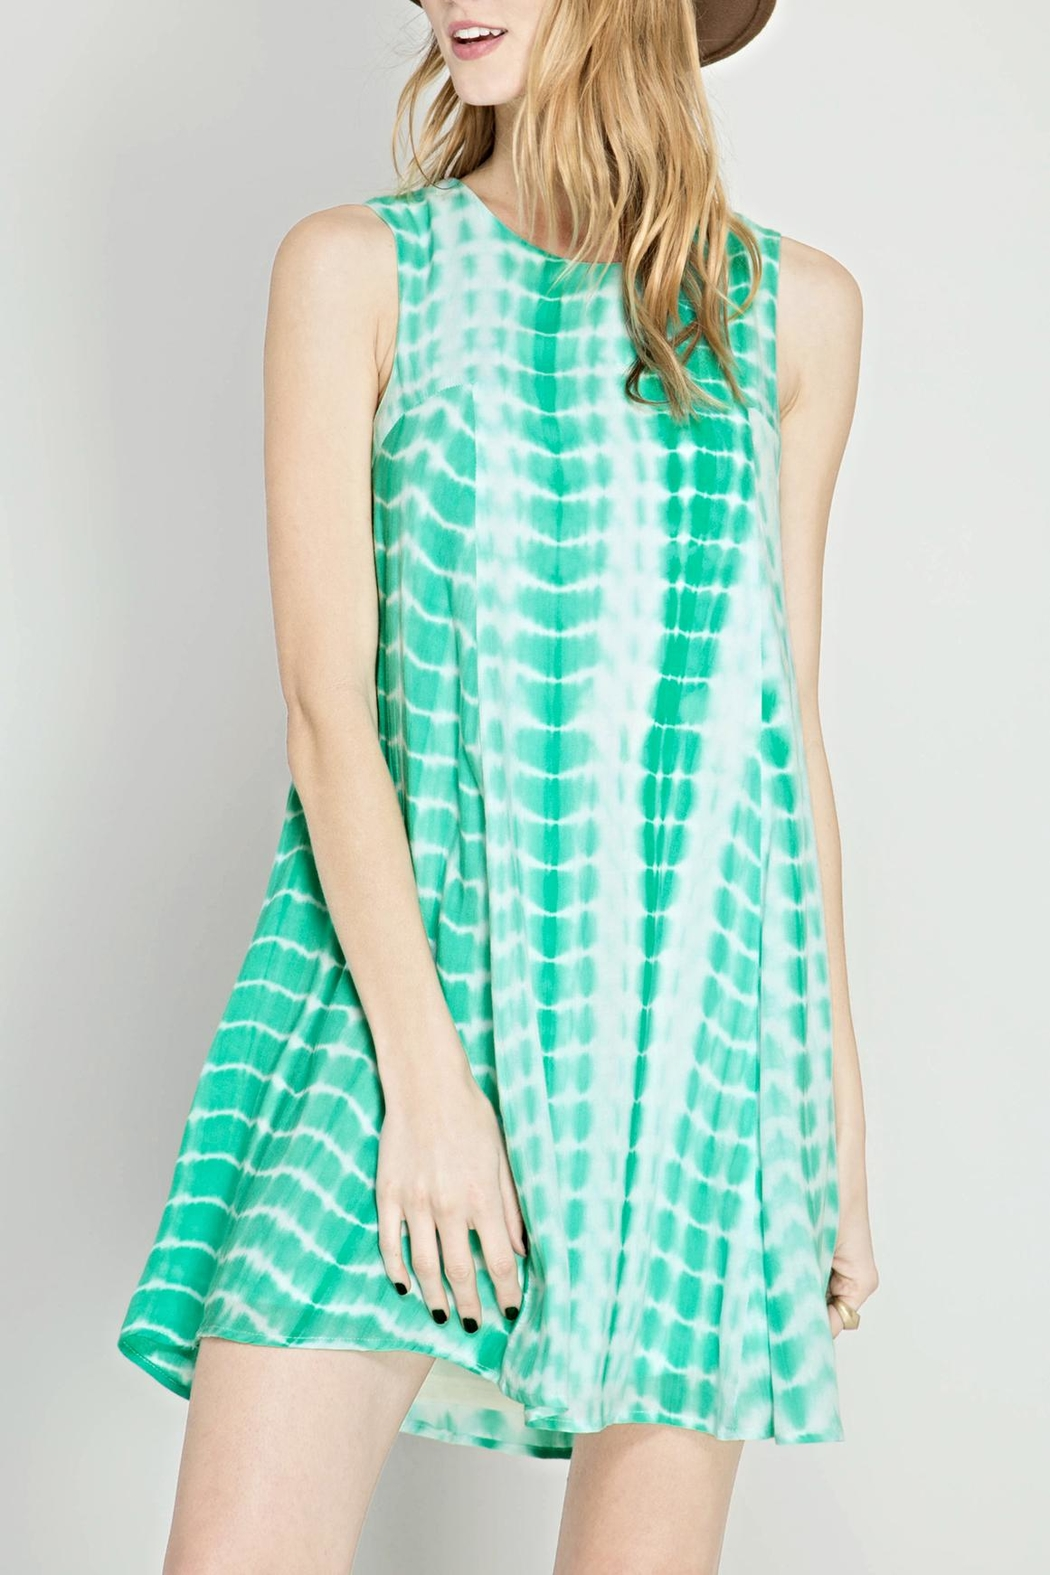 She + Sky Tie Dye Flare Dress - Main Image